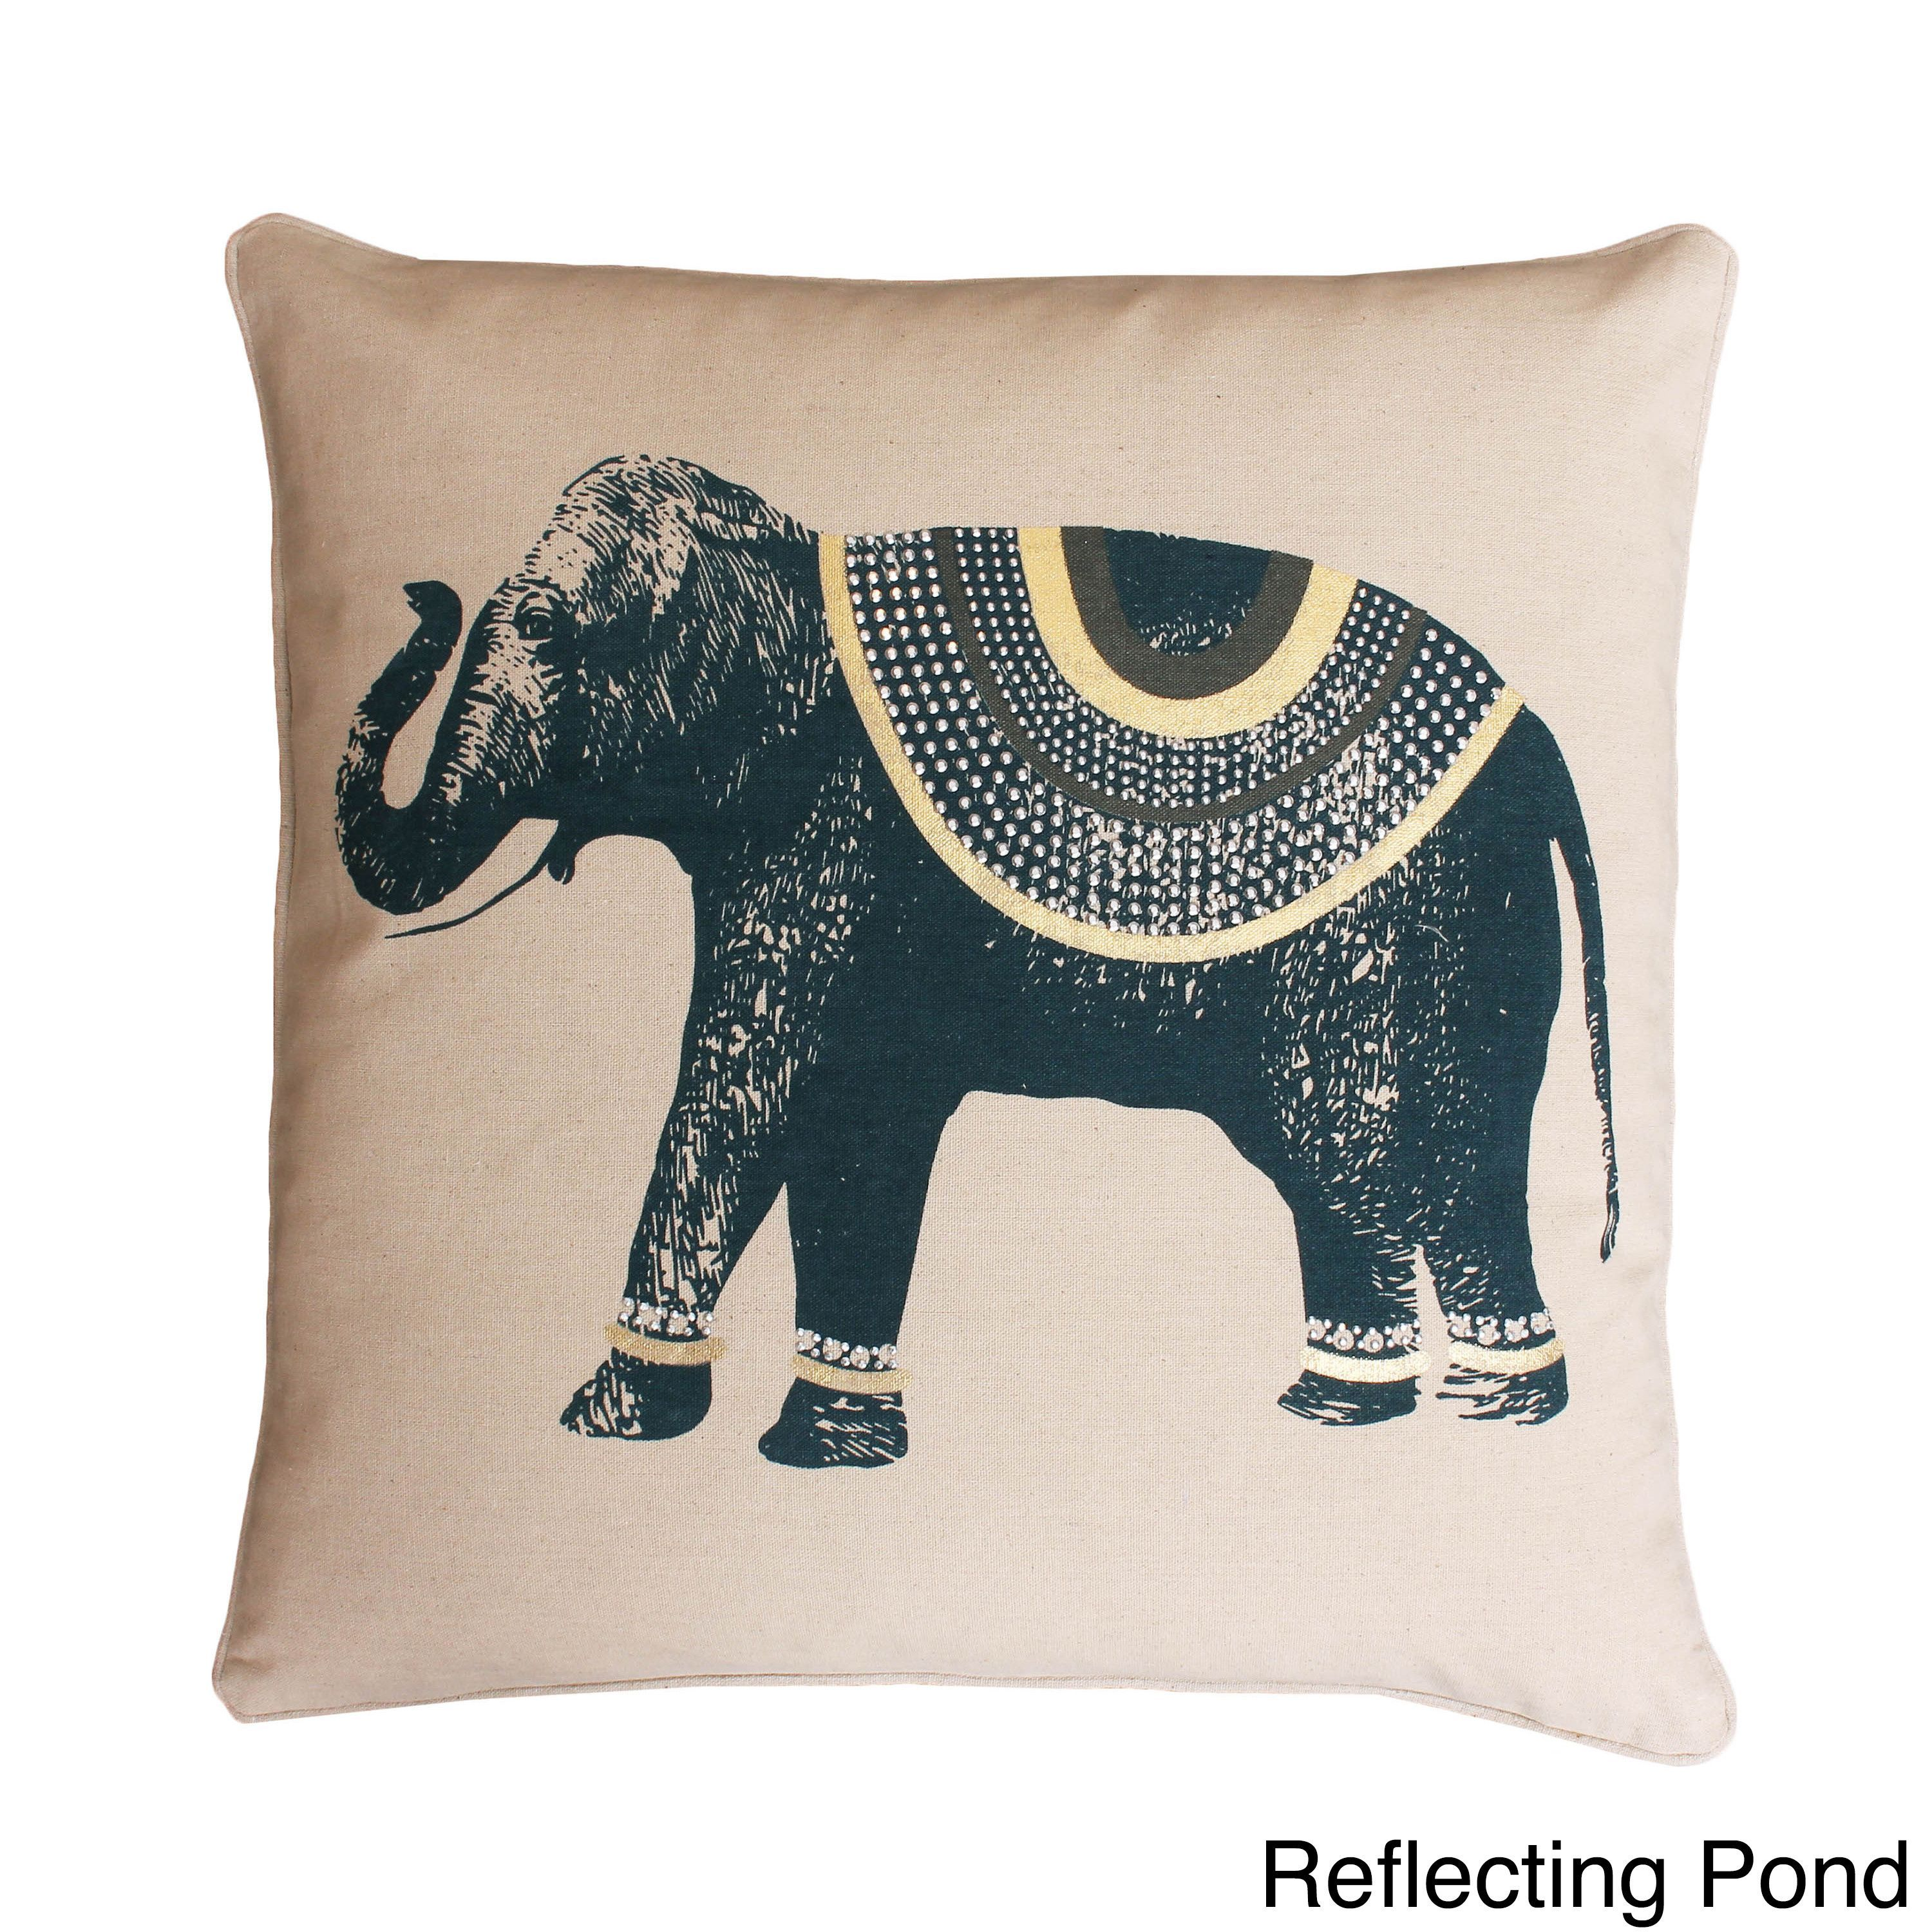 tufted dark grey rug blue f design coffee iron pillows backs amusing hawaiian room flooring with living chairs table white style decor couch button concept pillow colorful arms wood wooden throw ideas and mahogany